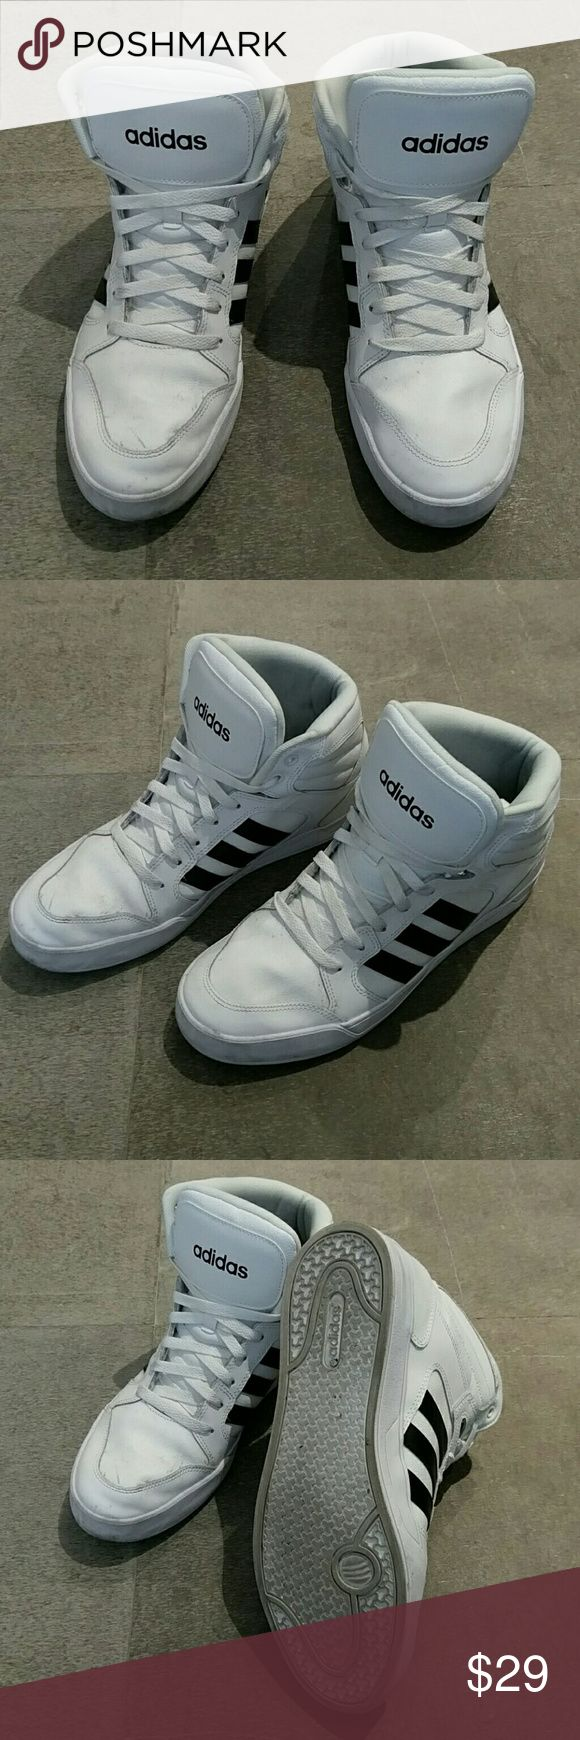 Adidas Raleigh Neo high top sneakers 11 white Adidas Raleigh Neo high top sneakers 11, white with black stripes, only worn a few times. Adidas Shoes Sneakers